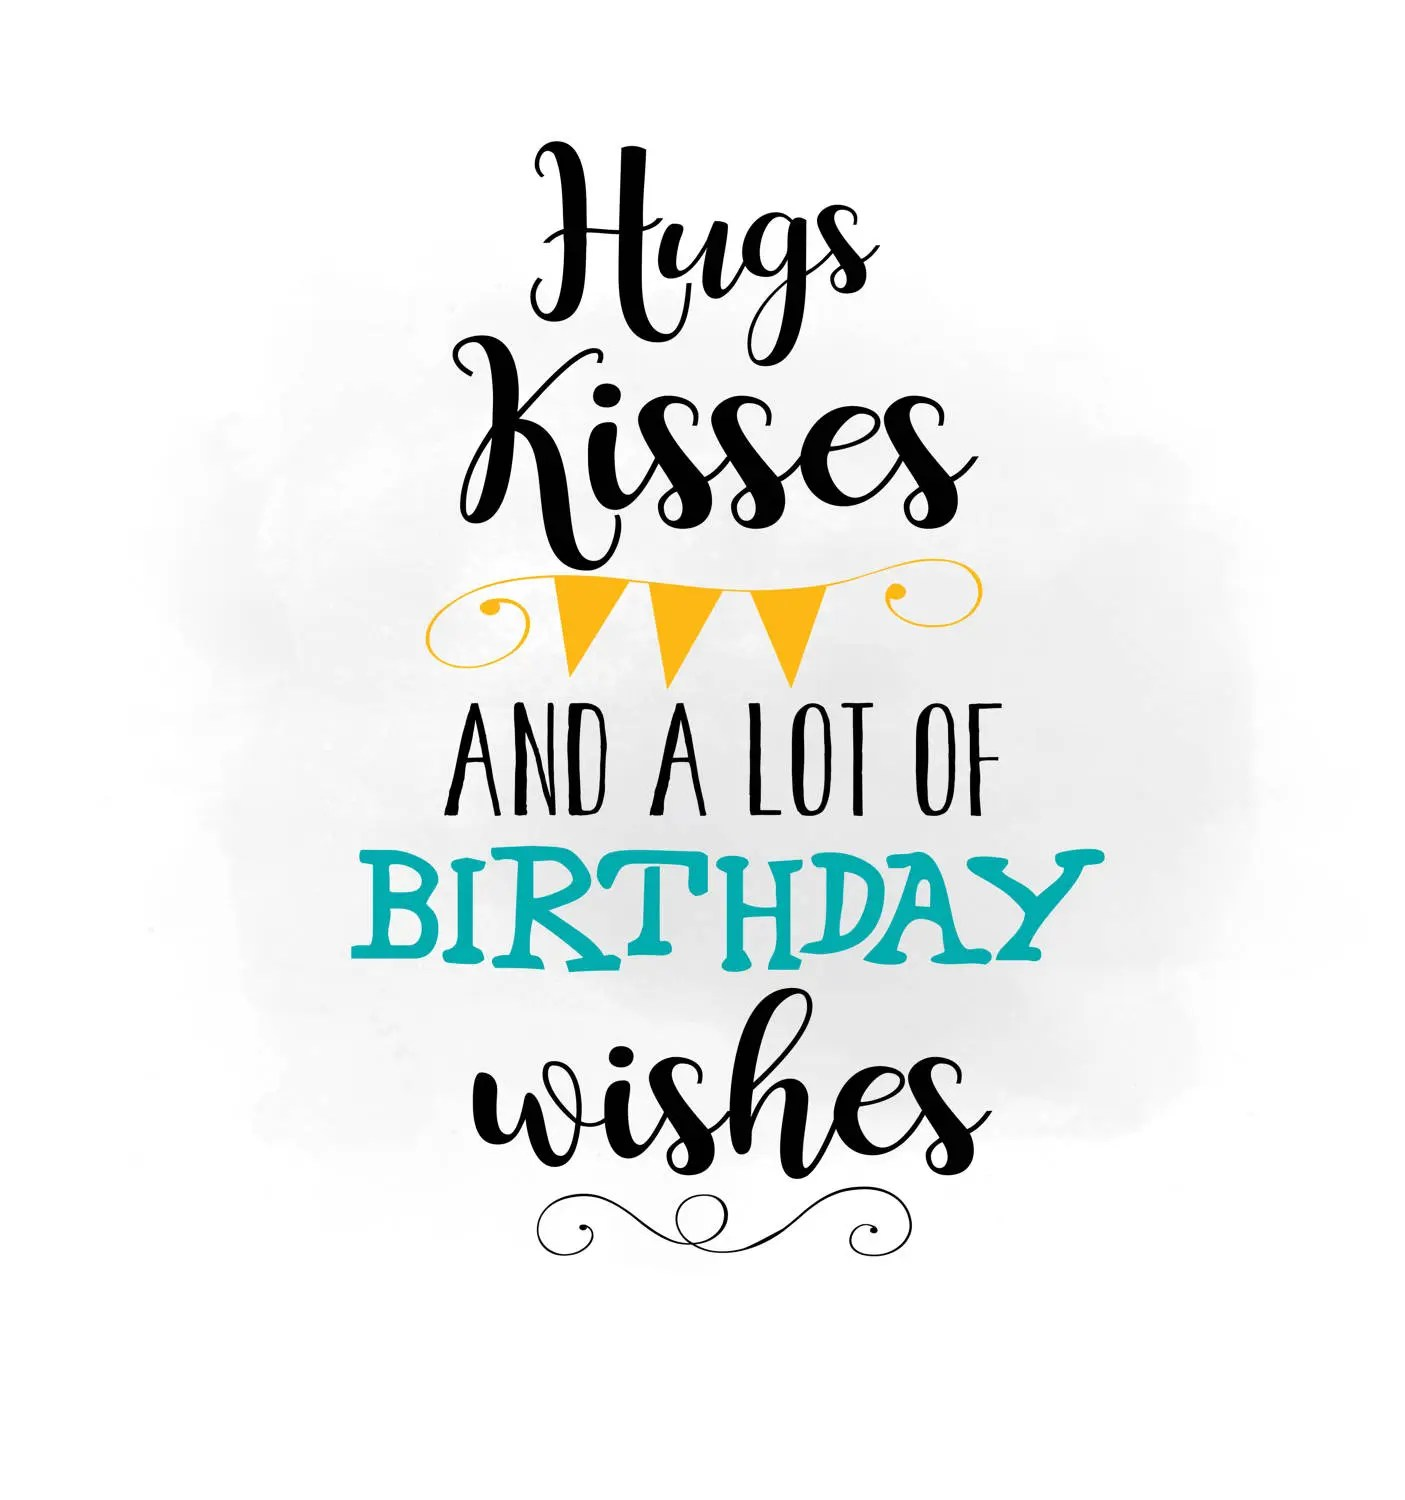 Hugs Kisses Birthday Wishes Svg Clipart Birthday Quote Word